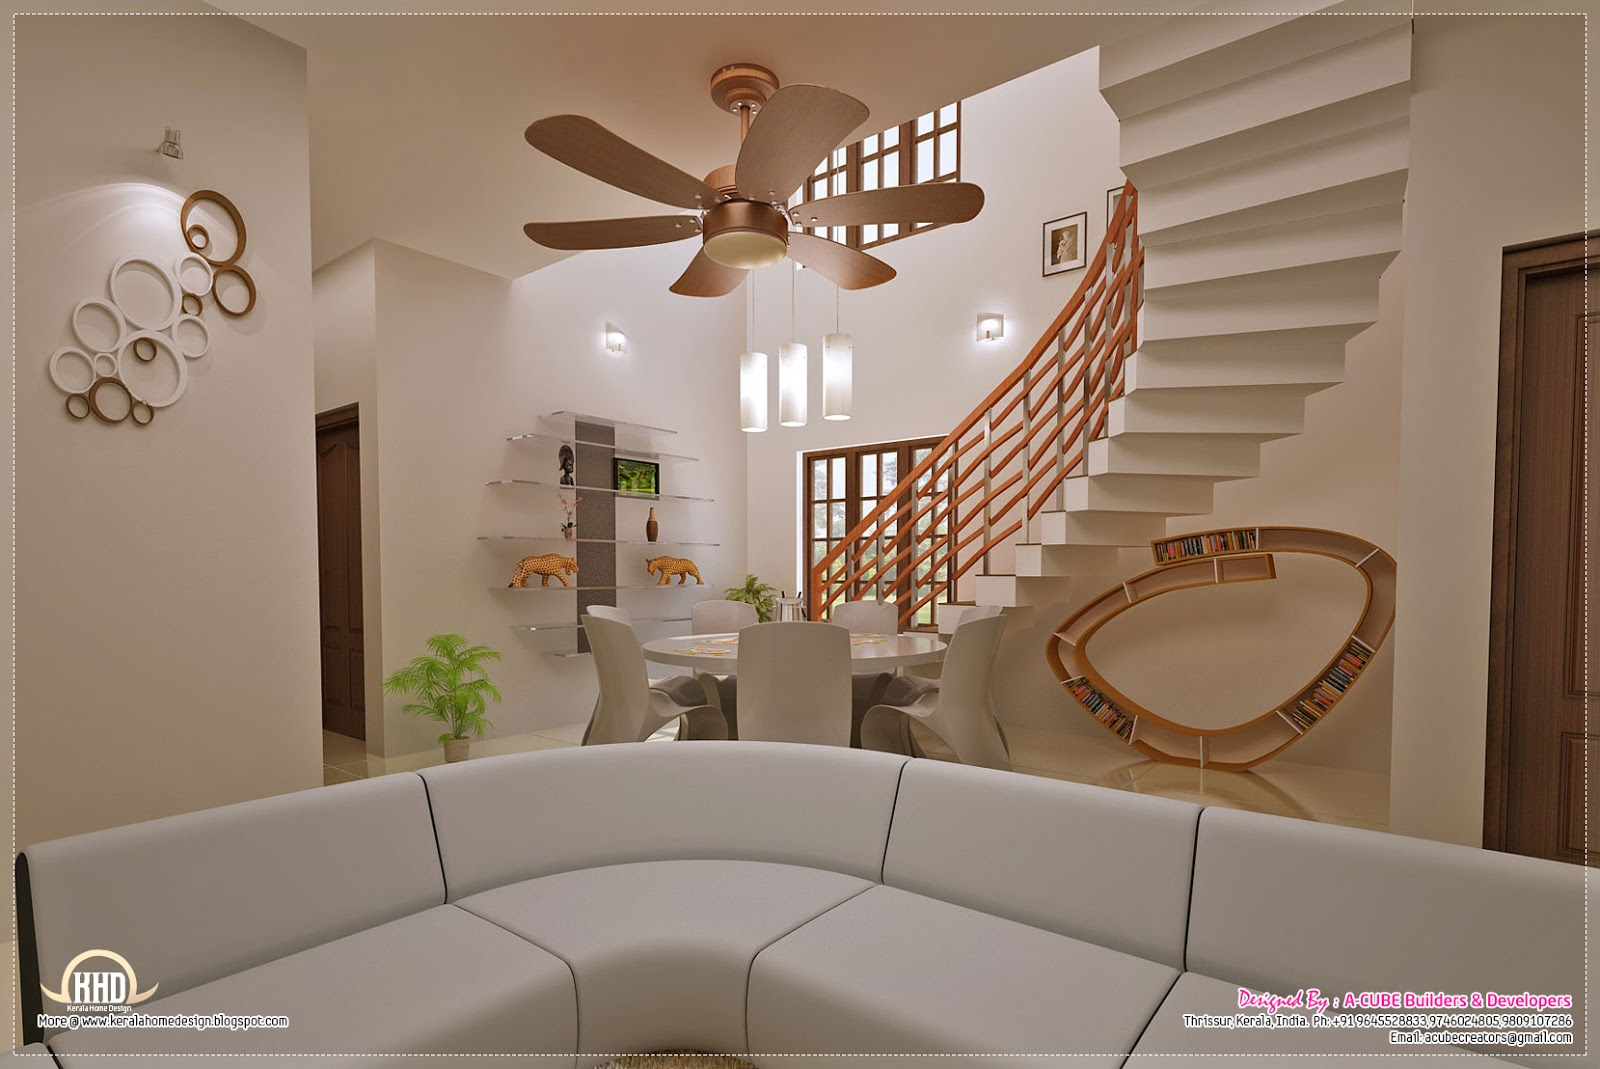 Awesome interior decoration ideas kerala home design and for Home interior design india